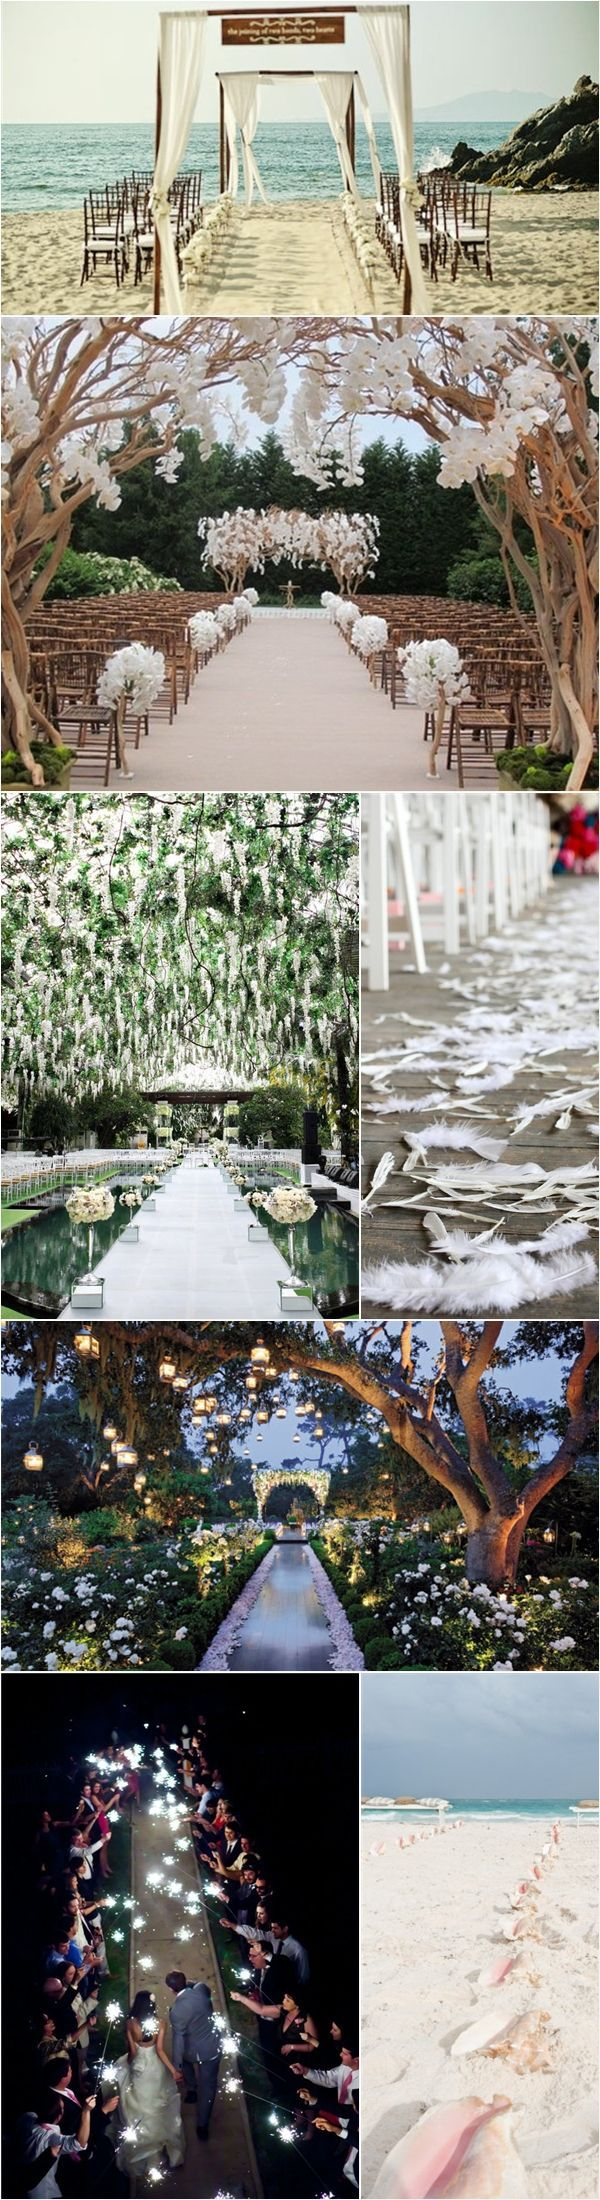 Praise Wedding » Wedding Inspiration and Planning » 24 Unique Aisle Décor Ideas!